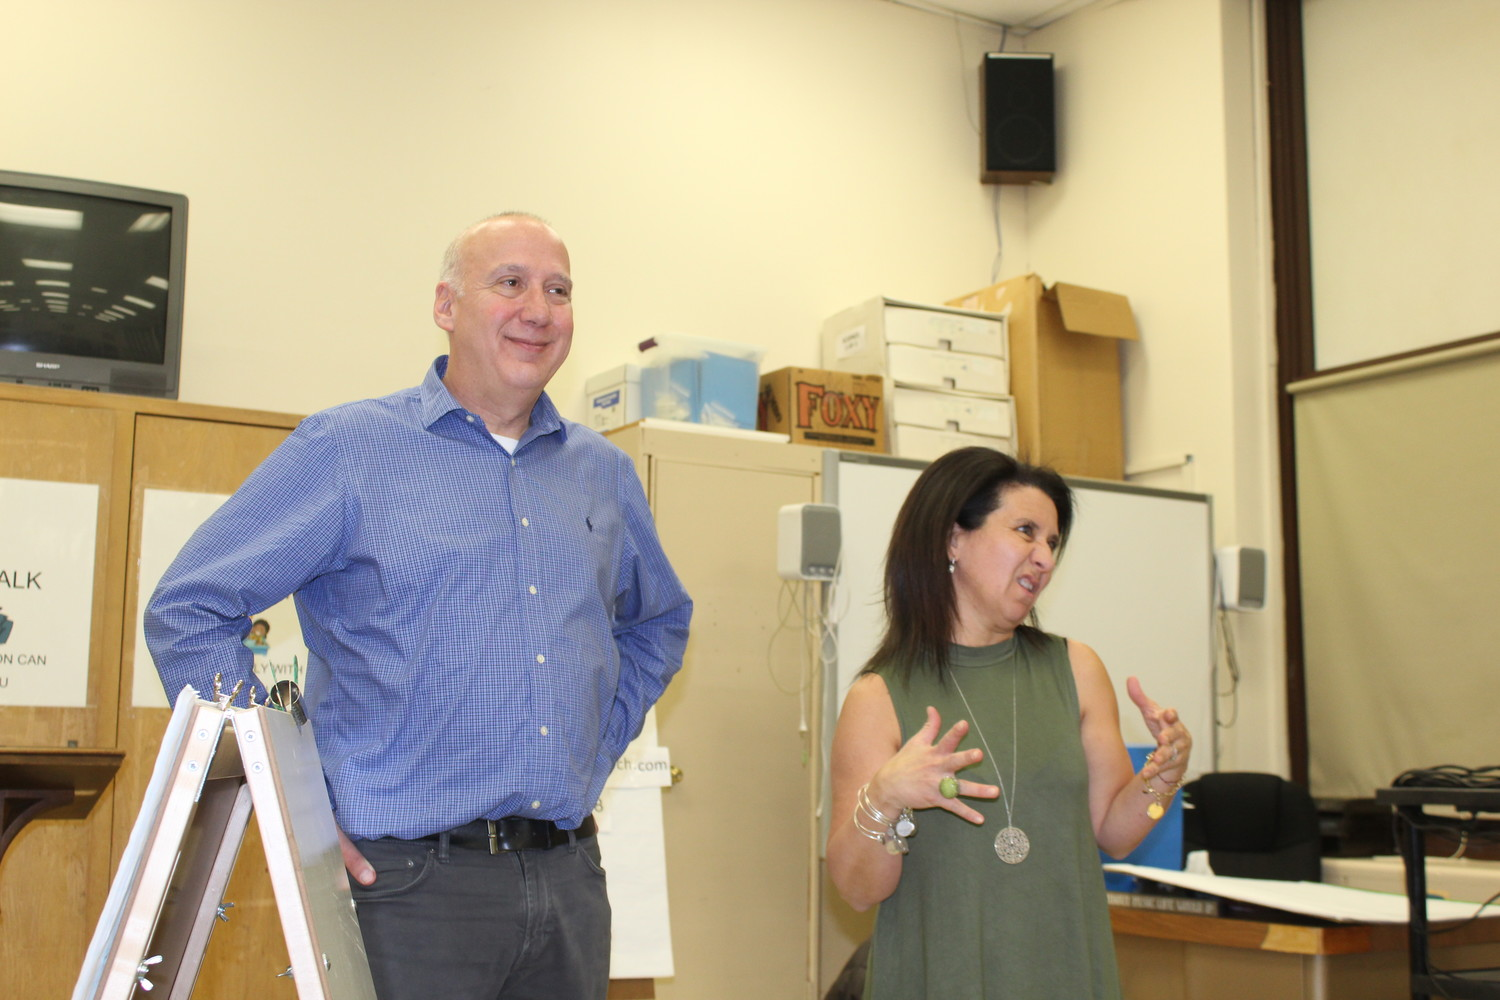 Bob Freier and Joann Kaplan, of District Wise Search Consultants, collected input from residents in District 24 on what they want in a new superintendent.